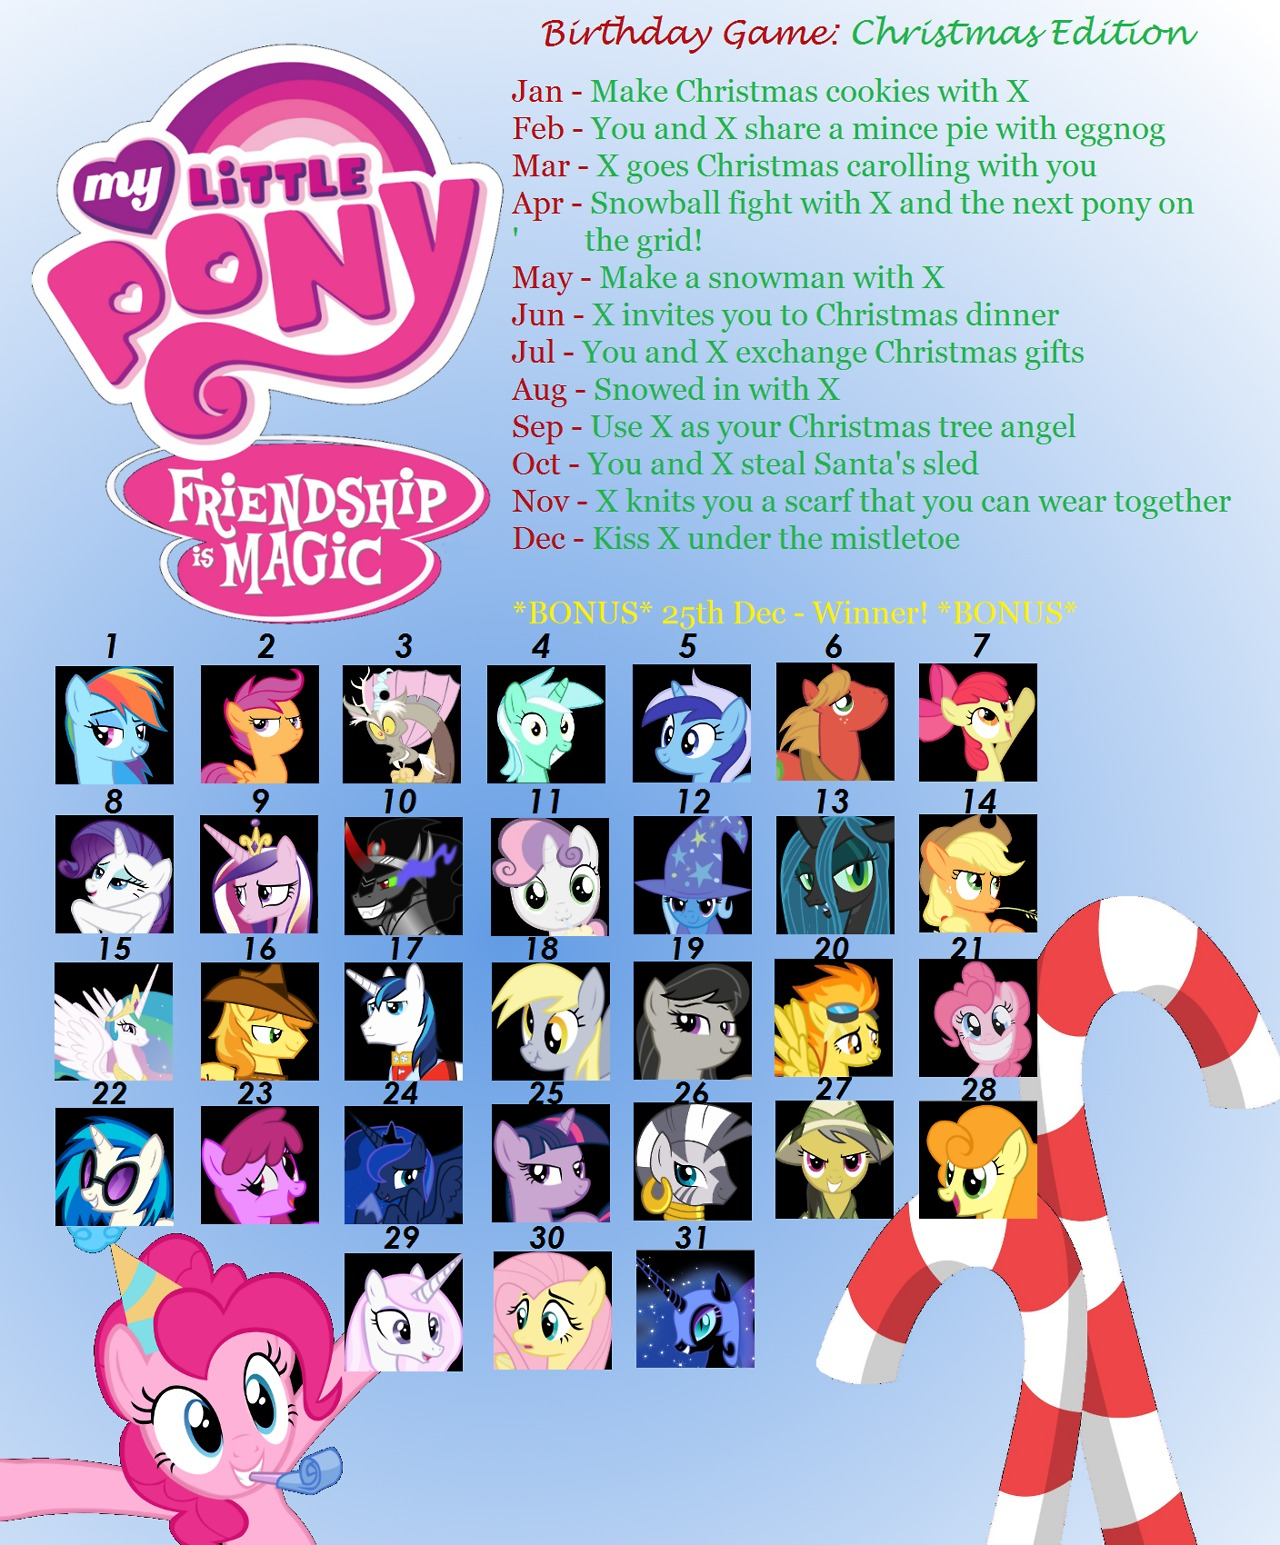 ponies birthday game christmas edition forum lounge mlp forums